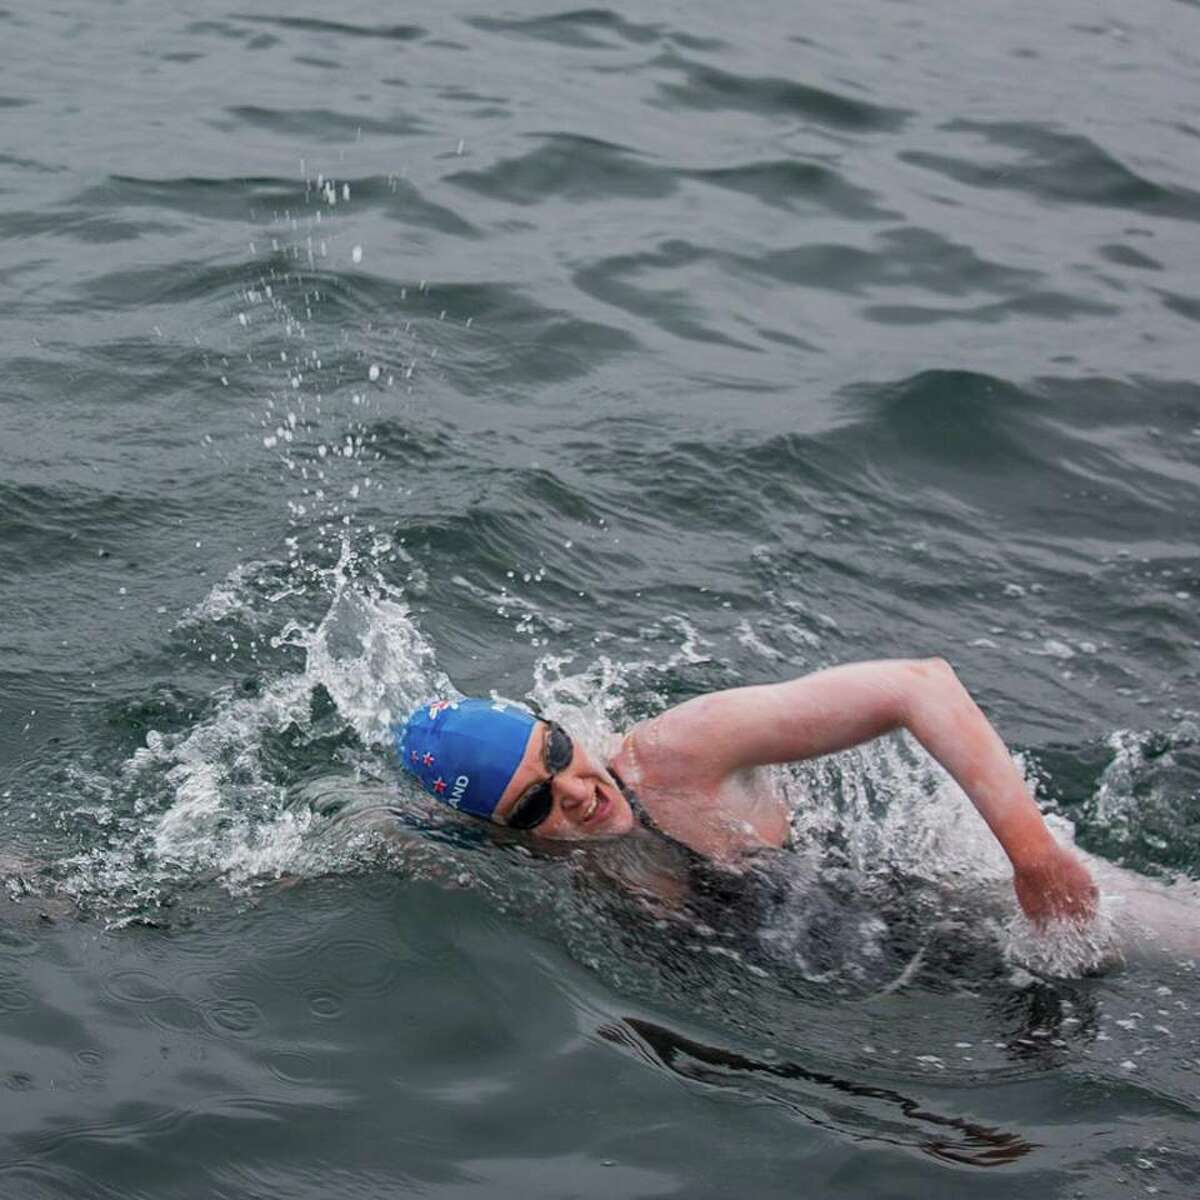 Kim Chambers swimming from the Farallon Islands to San Francisco on August 8, 2015. (Kate Webber)